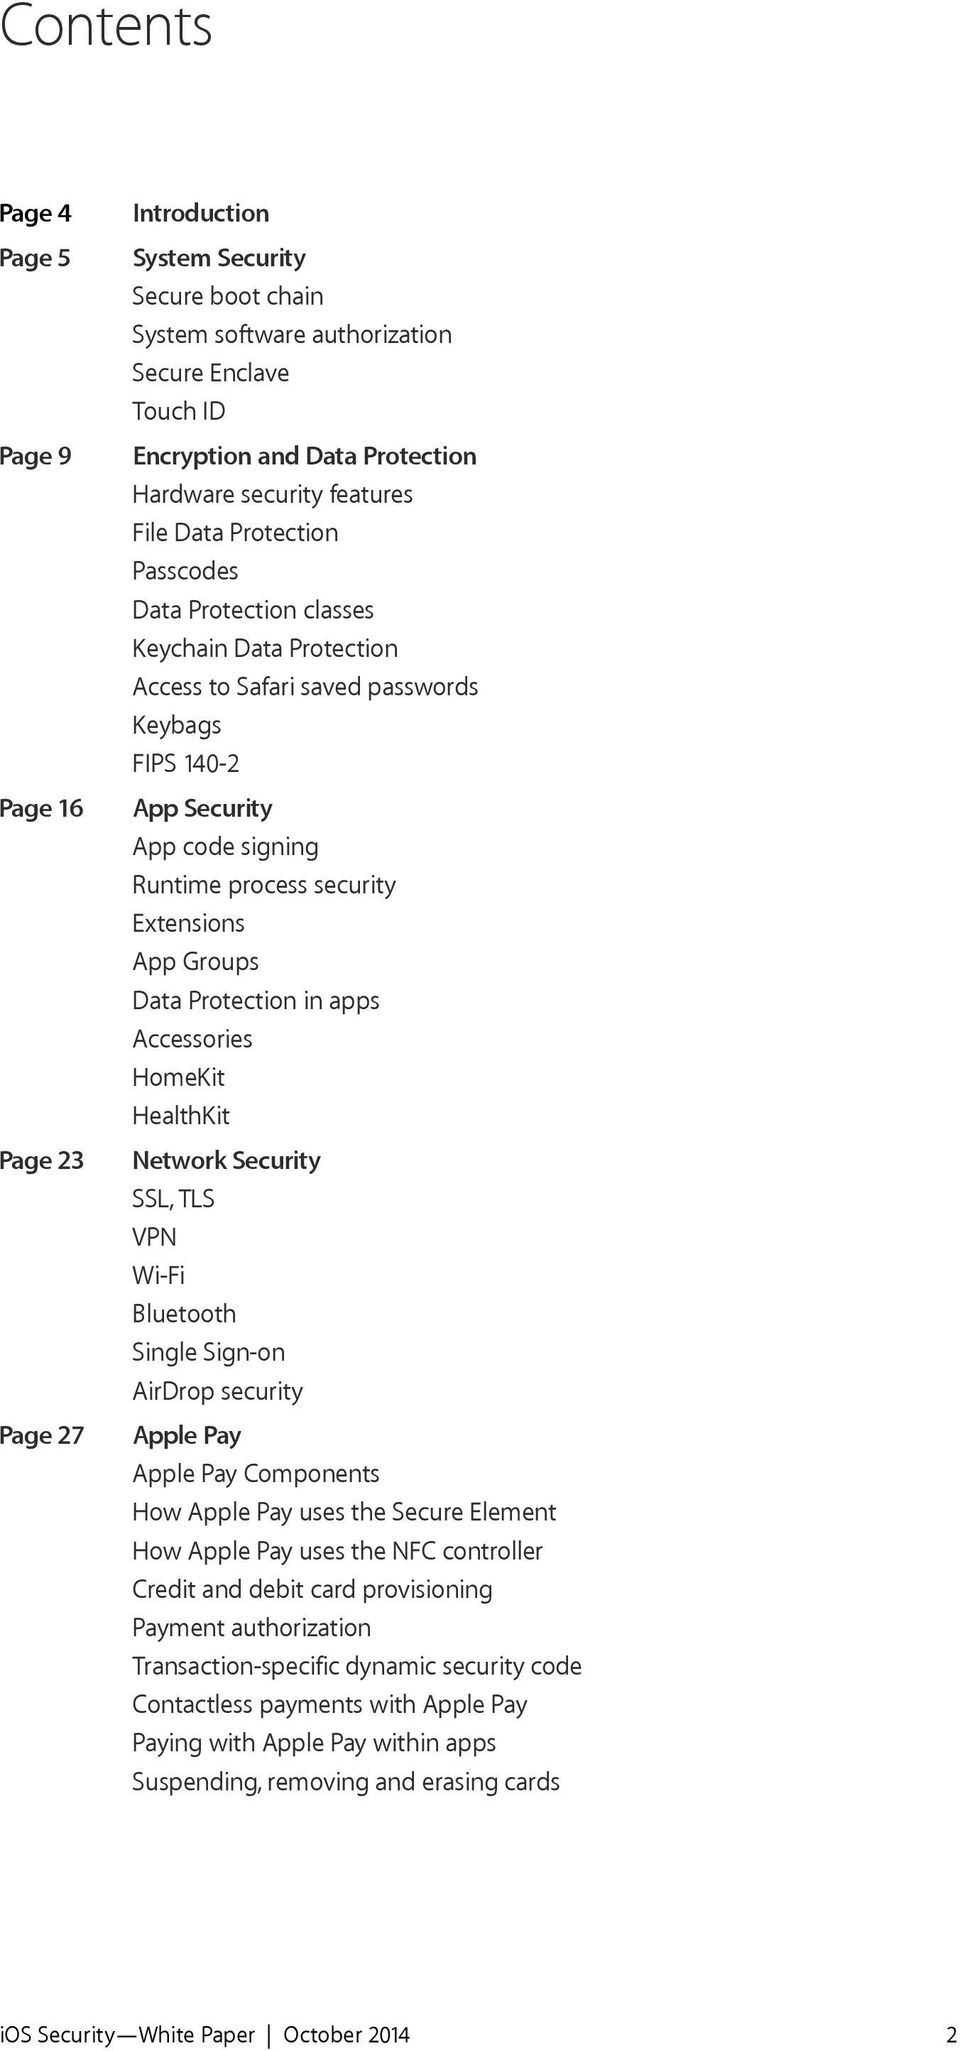 security Extensions App Groups Data Protection in apps Accessories HomeKit HealthKit Network Security SSL, TLS VPN Wi-Fi Bluetooth Single Sign-on AirDrop security Apple Pay Apple Pay Components How